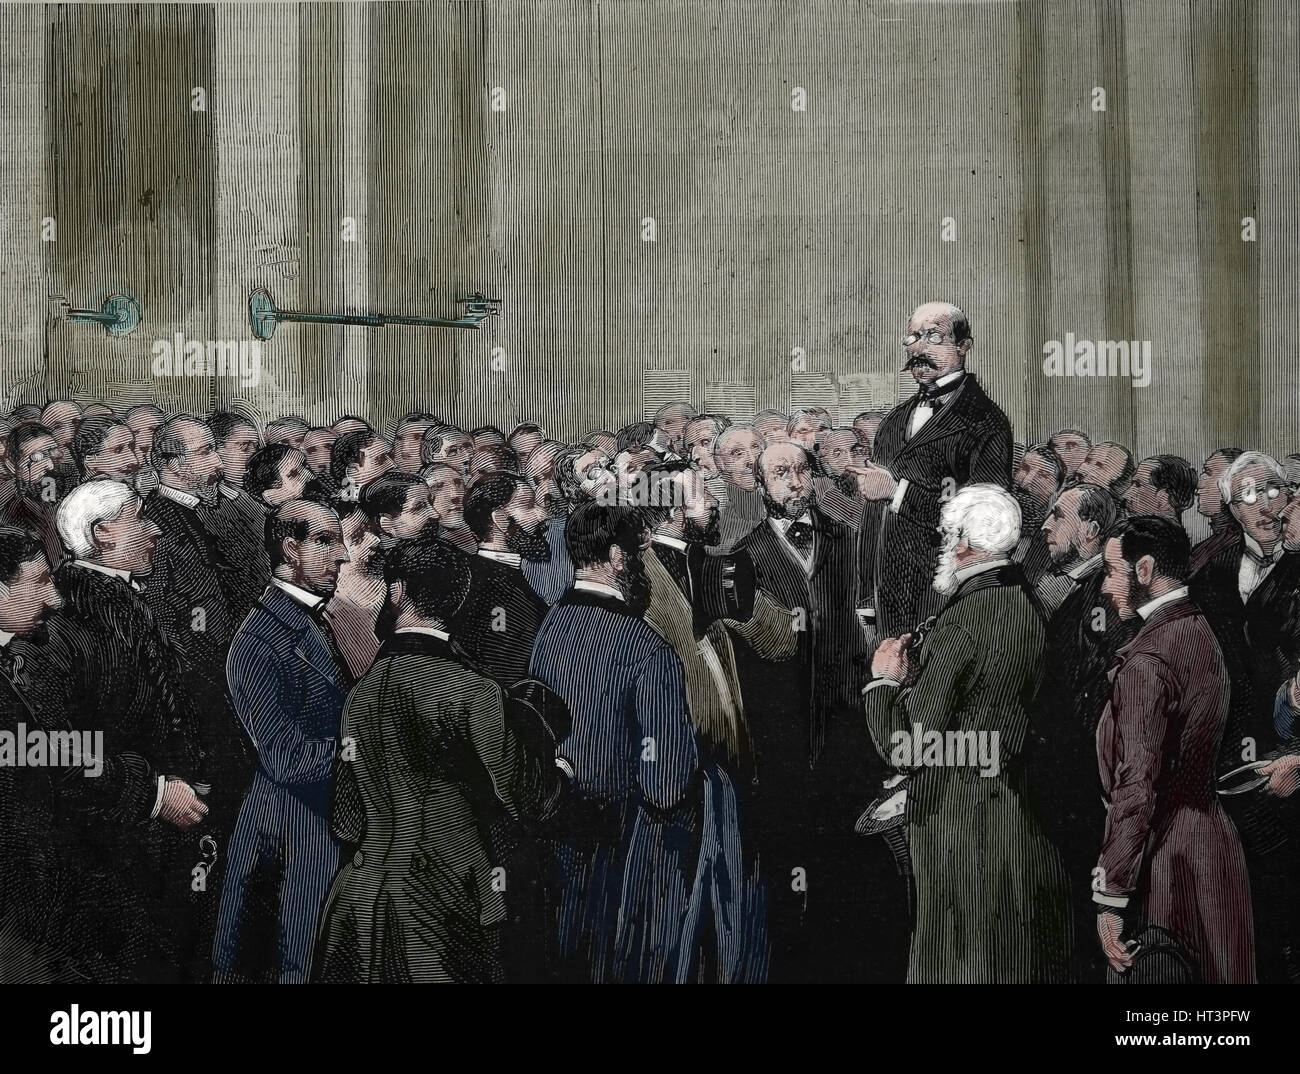 London. The Stock exchange on receiving the news of the attempted attack on the Queen Victoria I by Roderick Maclean, - Stock Image